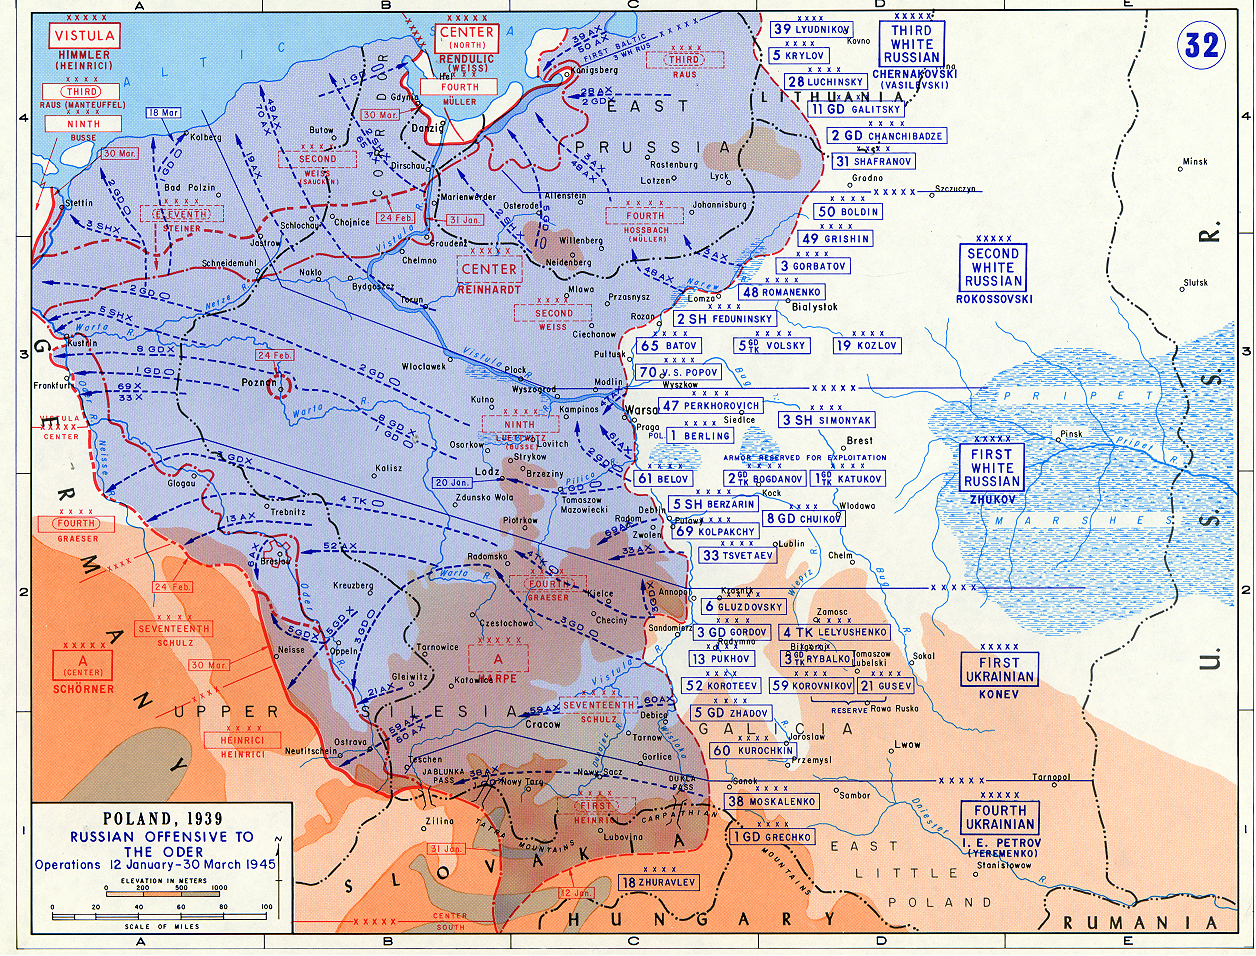 Map of russian offensive to the oder river january march 1945 wwii war theatre maps russian offensive to the oder river gumiabroncs Choice Image